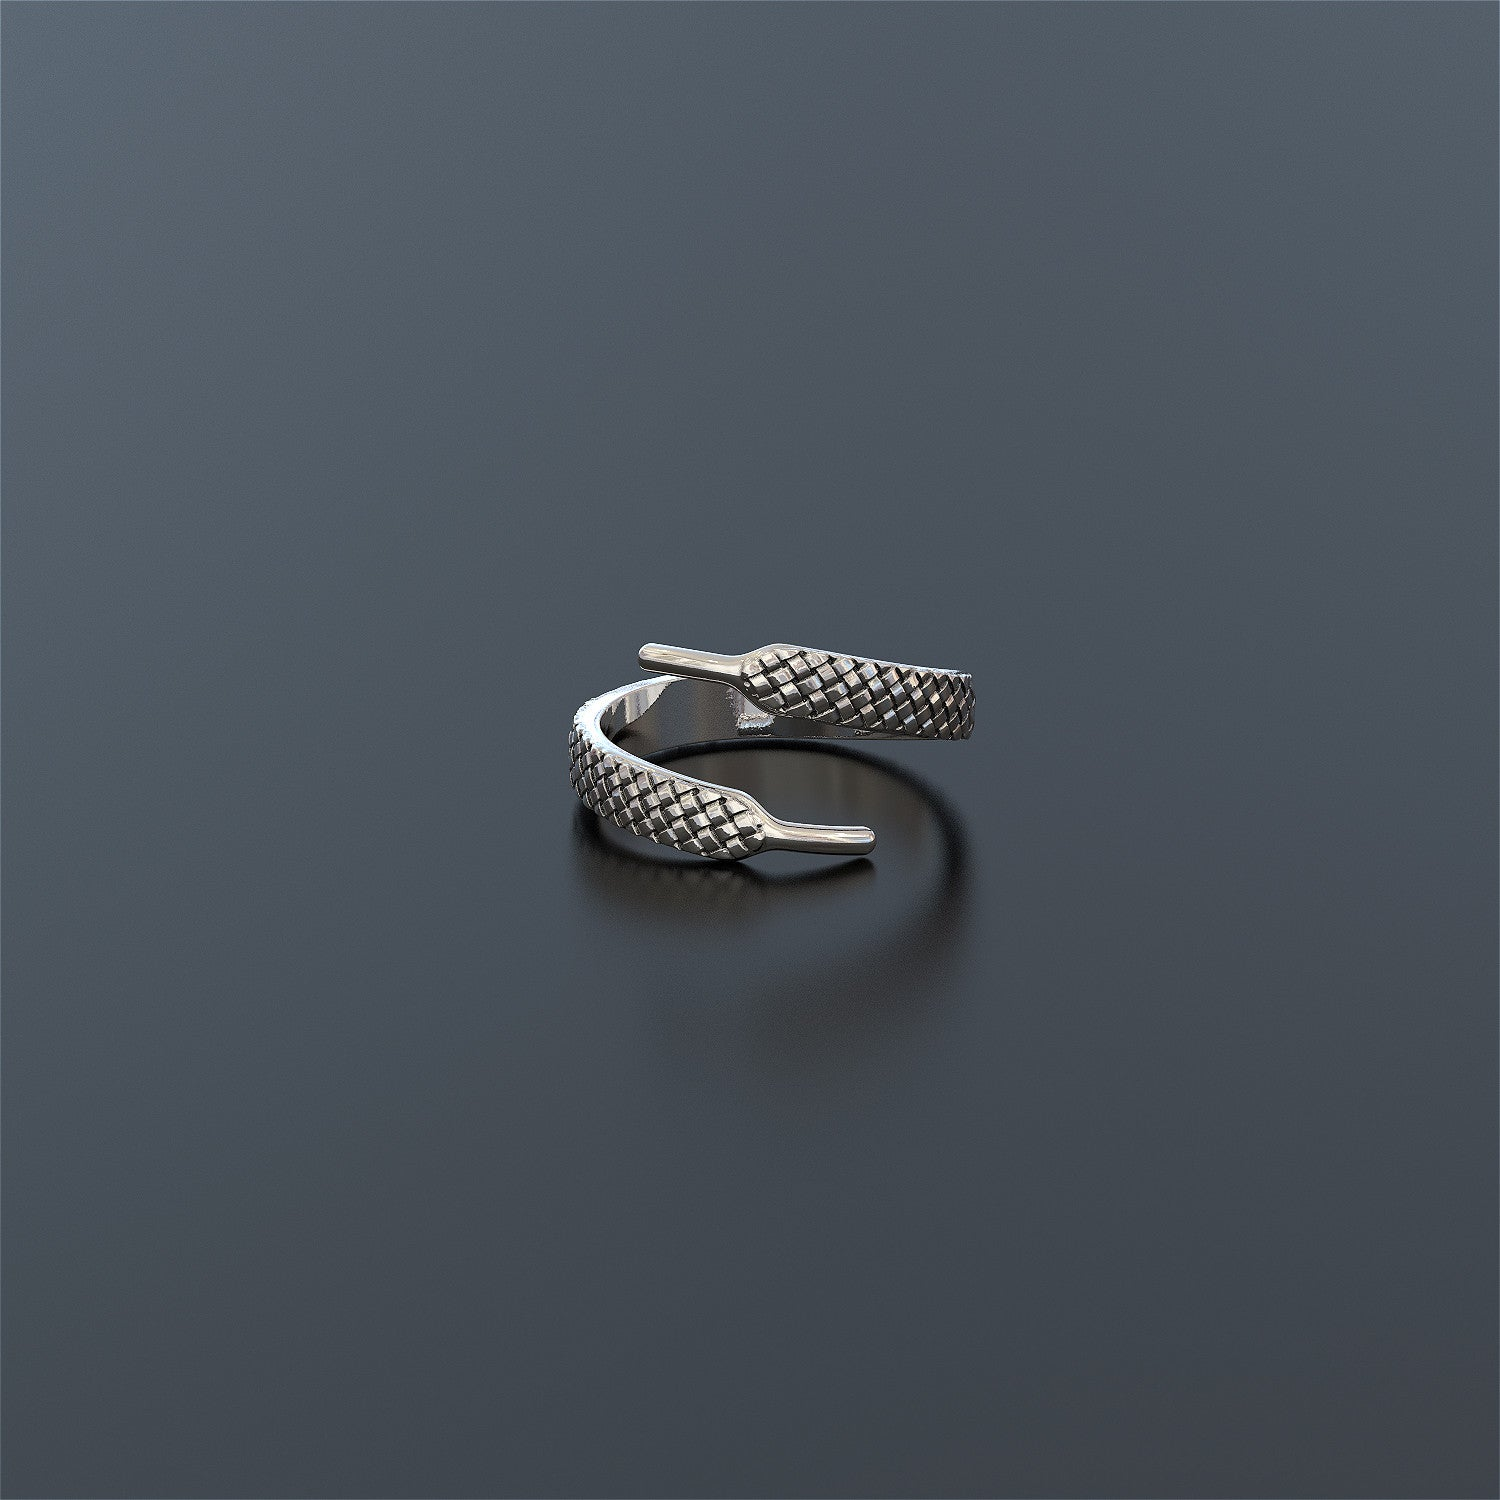 Shoe Lace Ring - VERY LIMITED NUMBERS